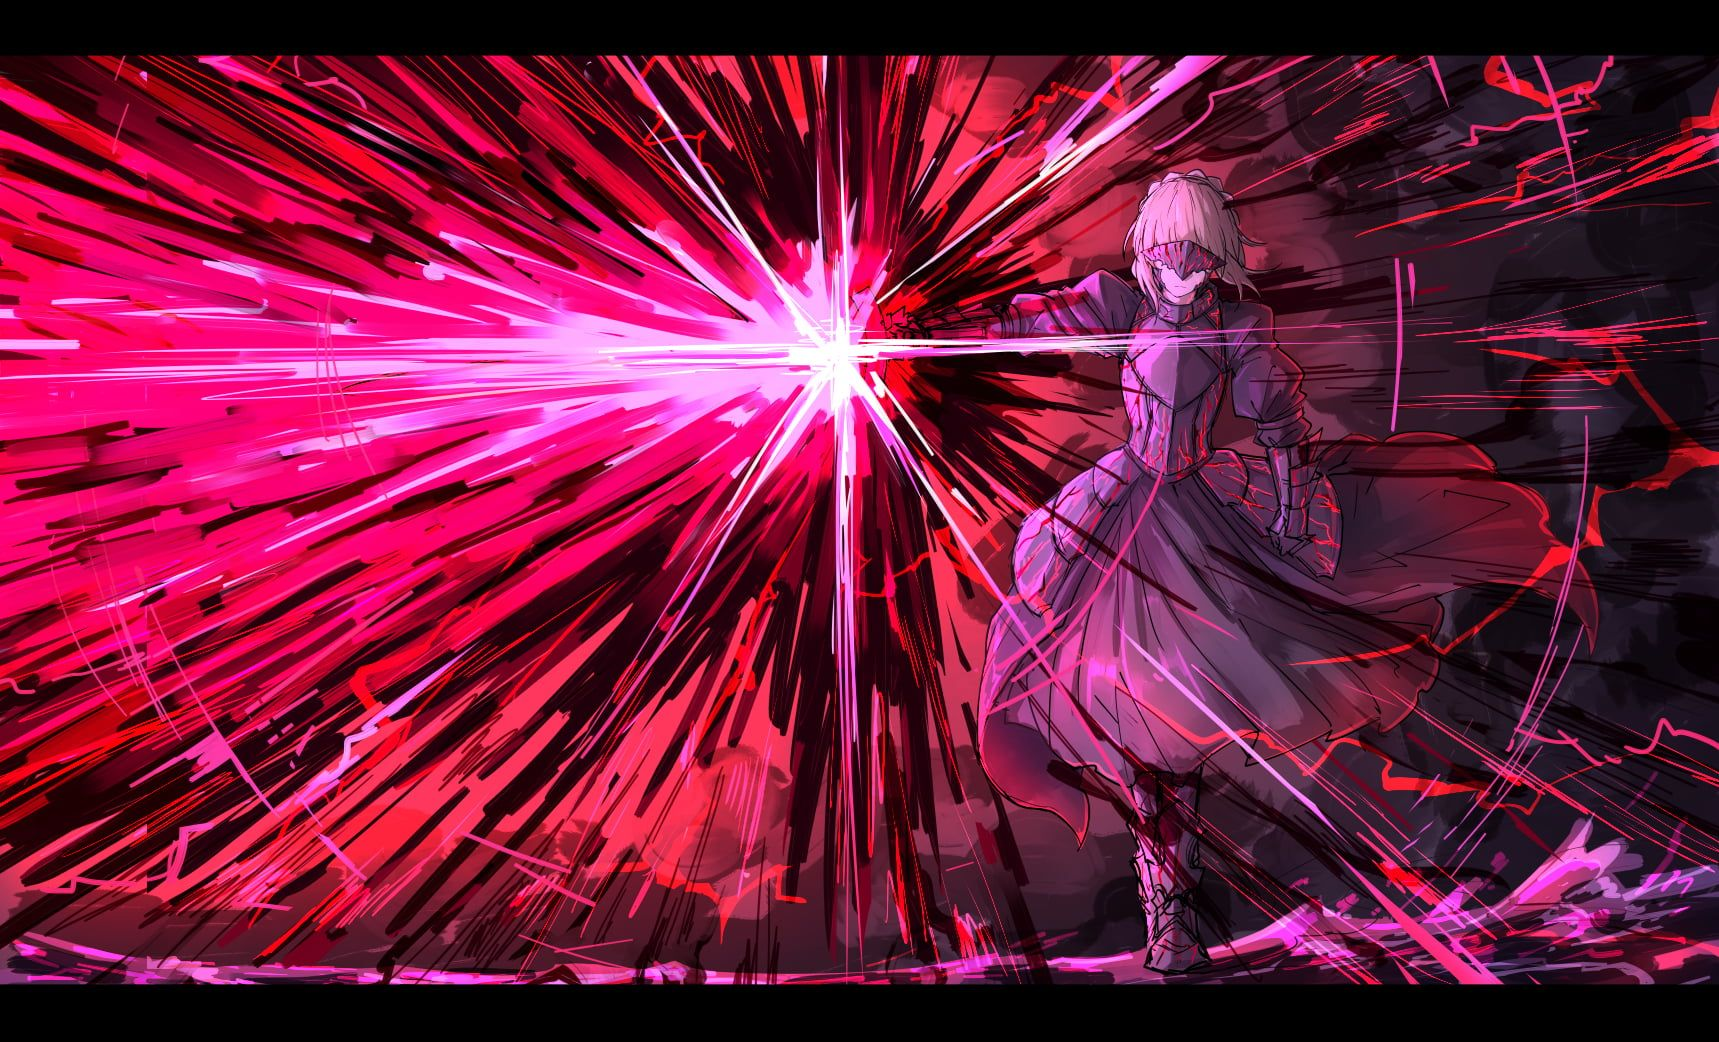 Anime Girls Anime Saber Alter Fate Stay Night Fate Series Fate